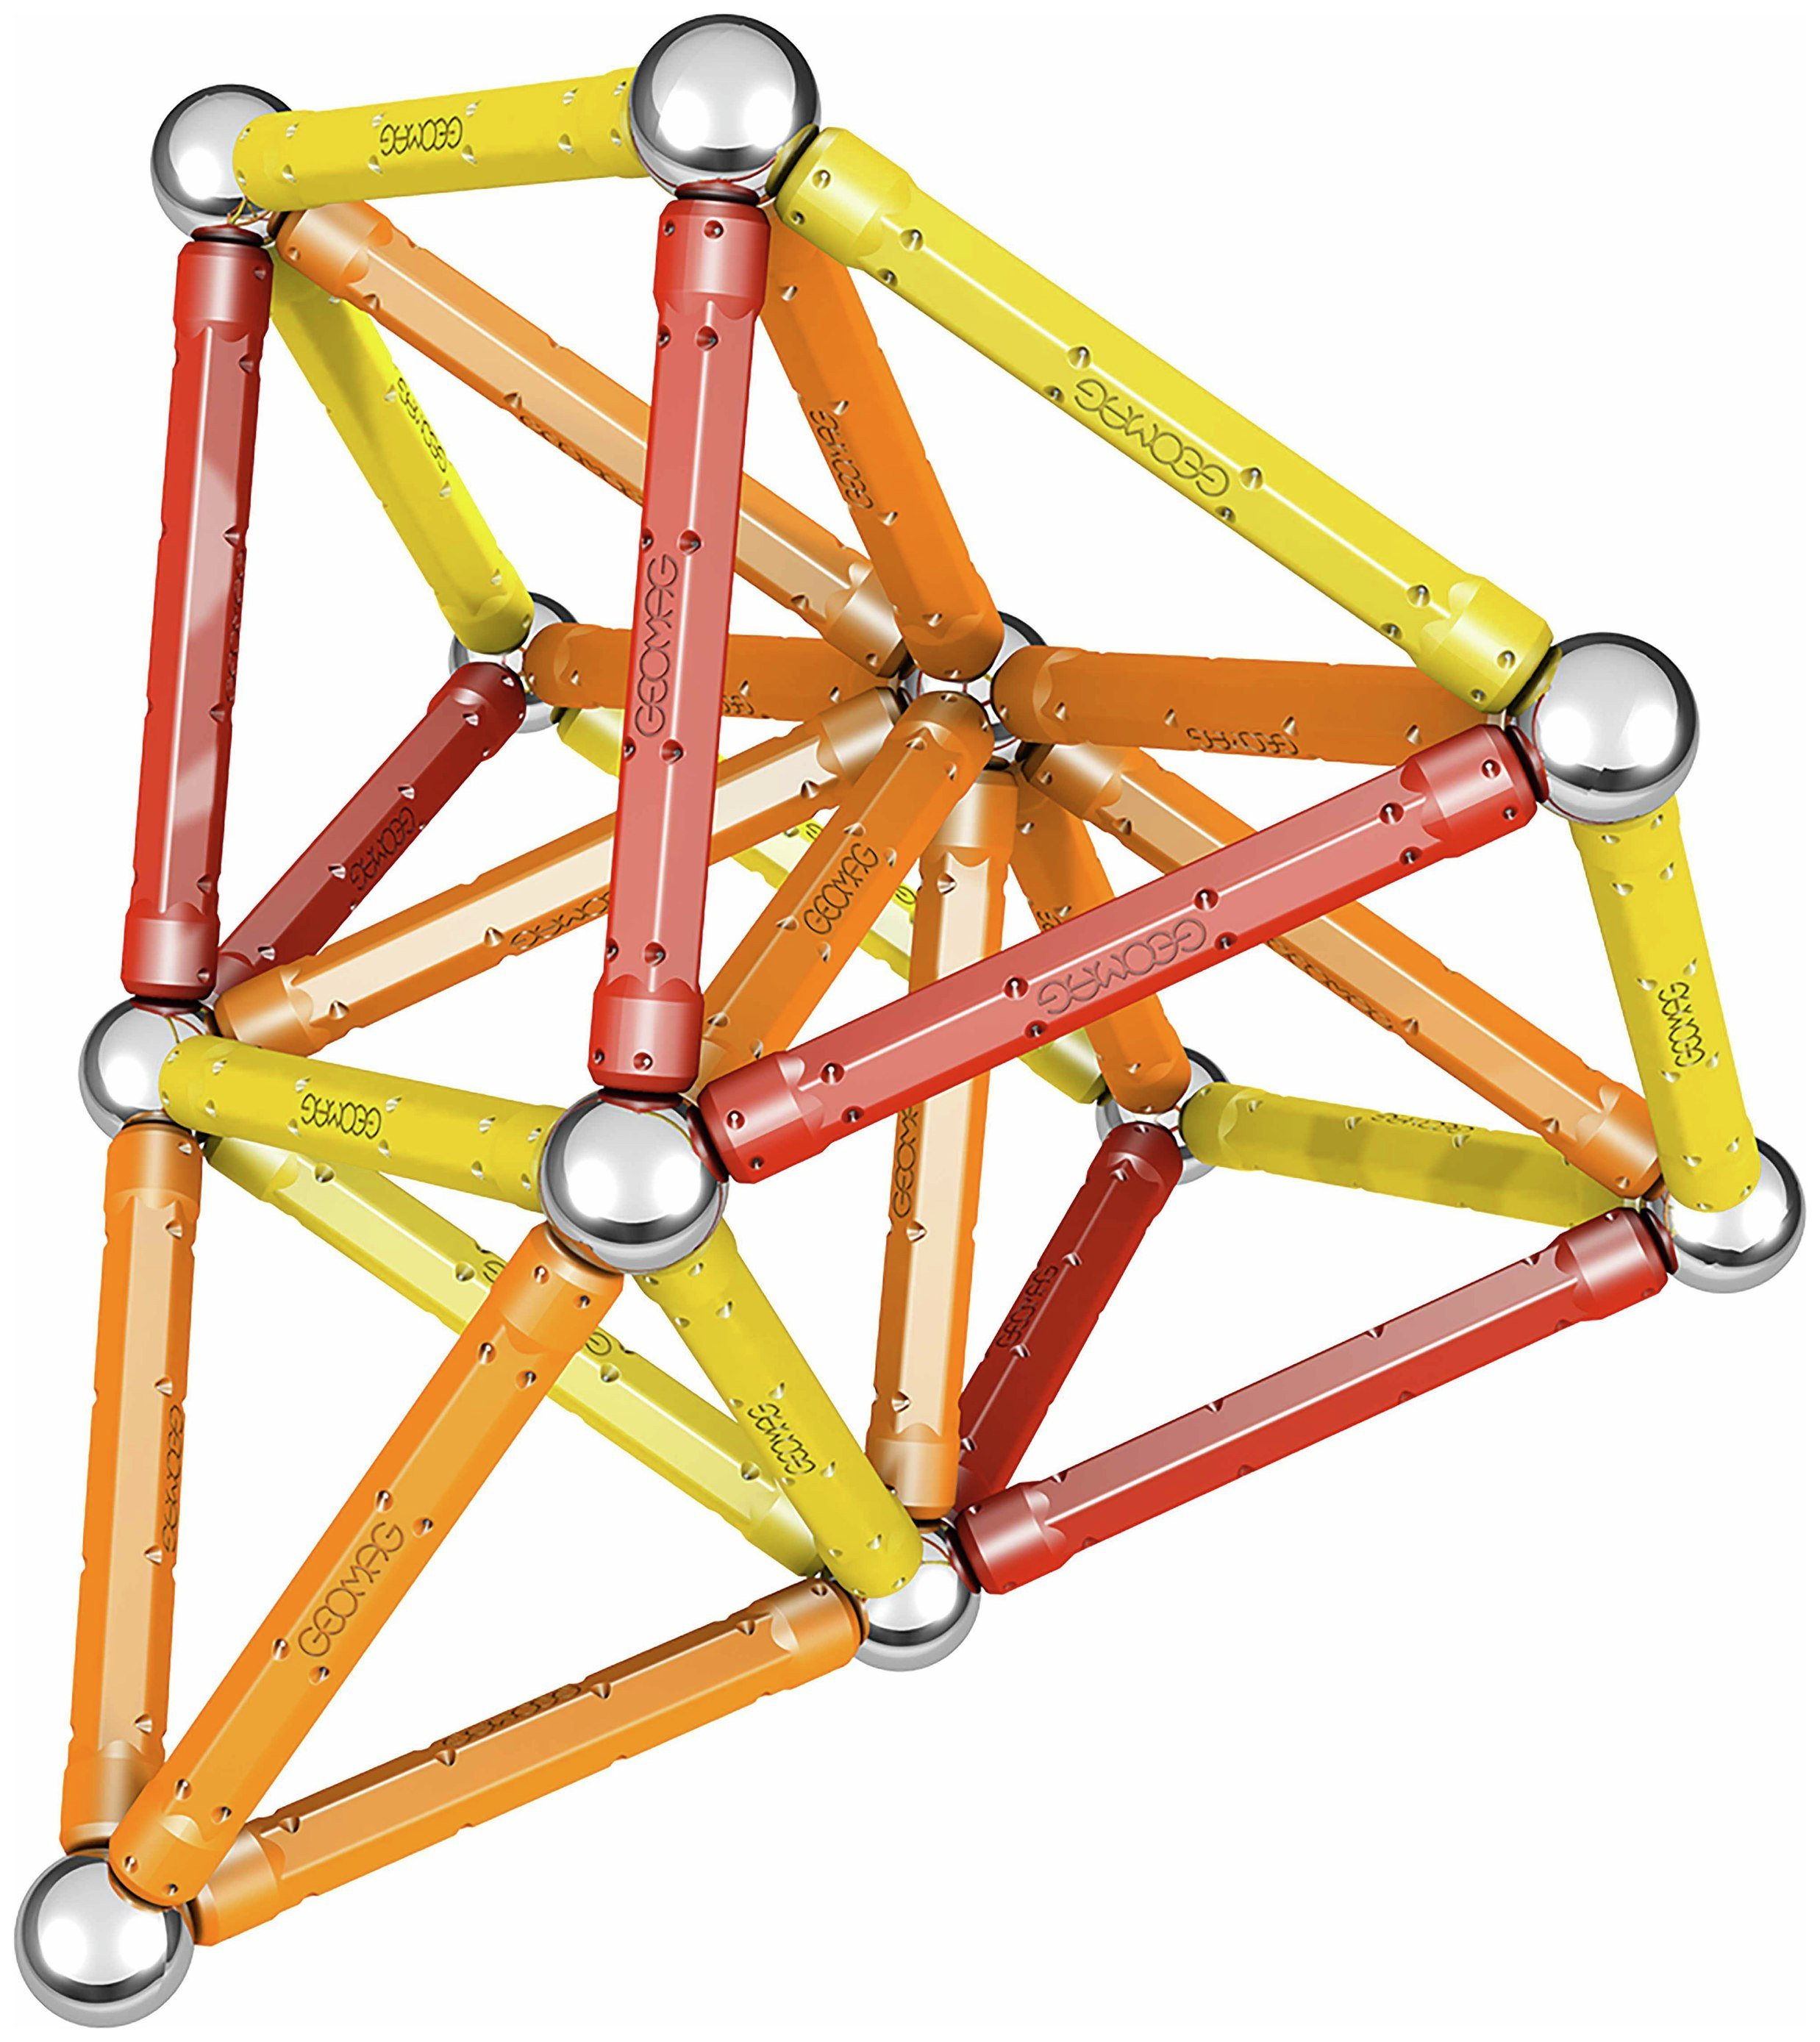 Image of Geomag Colour 64 Magnetic Construction System.